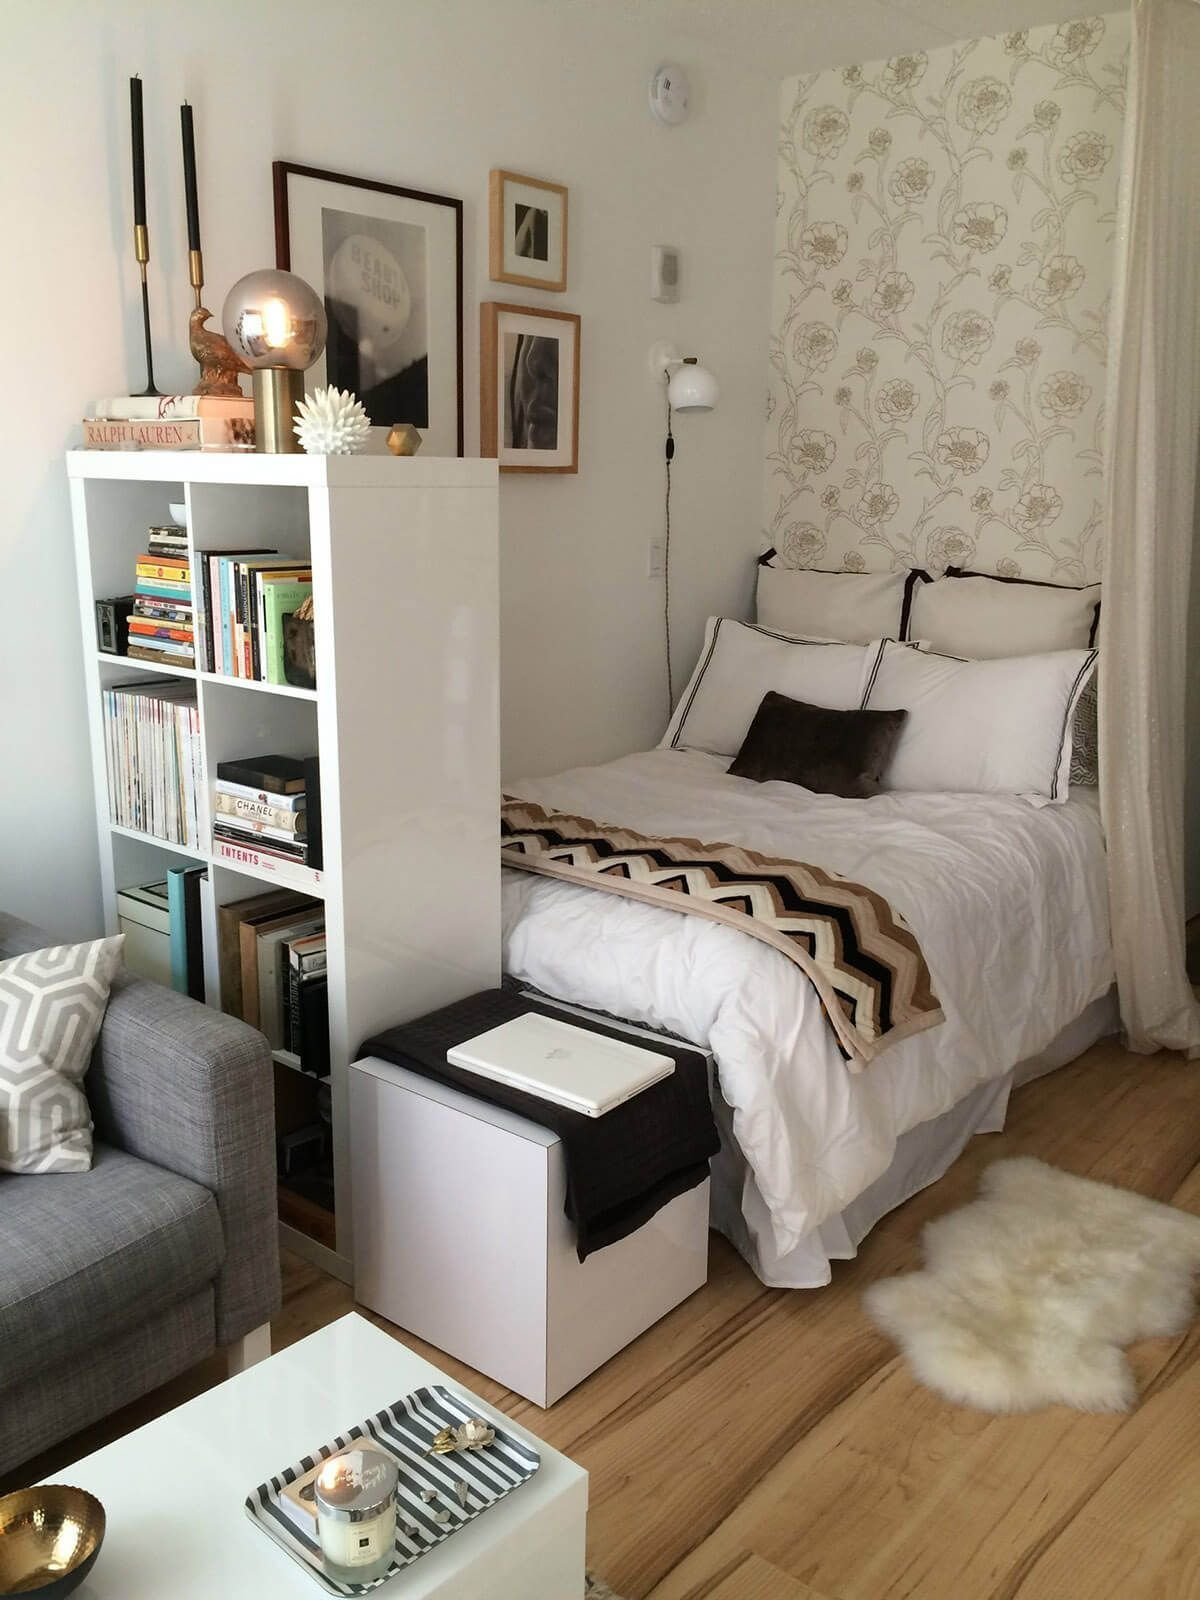 Best Small Bedroom Ideas With A Tall Bookshelf My Room In 2019 Room Decor Small Bedroom Designs With Pictures